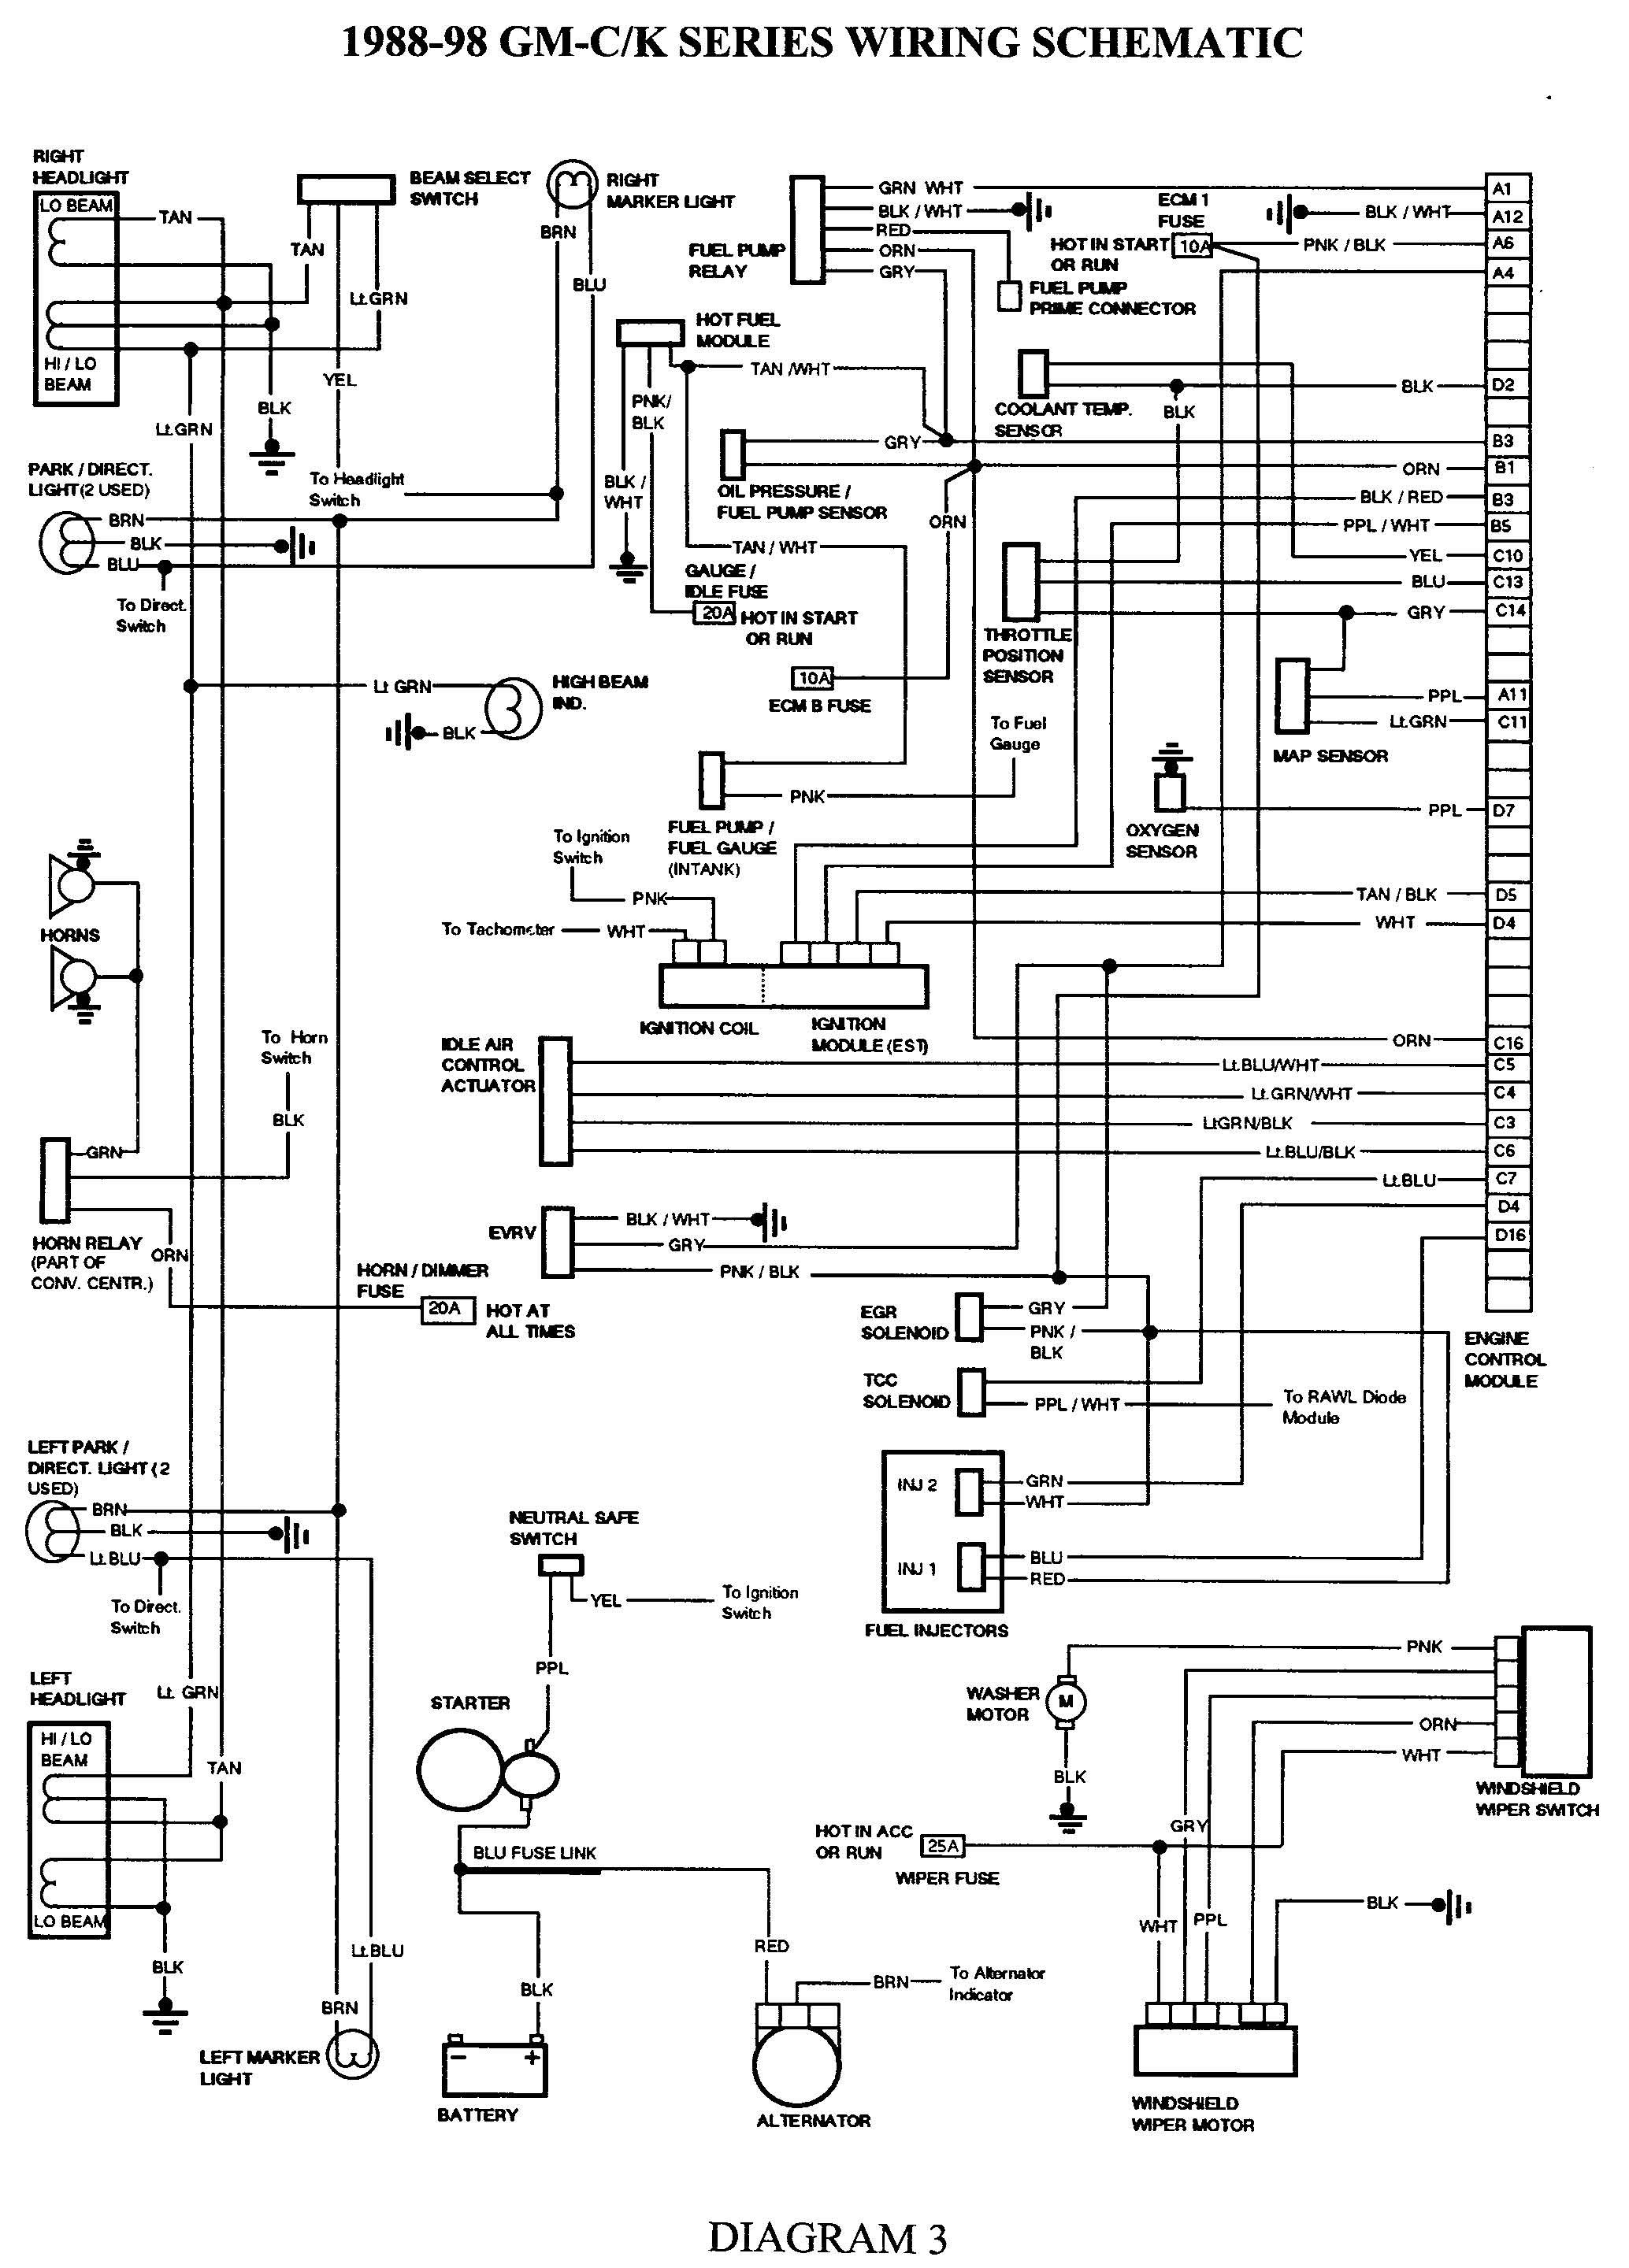 gmc truck wiring diagrams on gm wiring harness diagram 88 98 kc relay coil diagram s10 relay diagram [ 2068 x 2880 Pixel ]